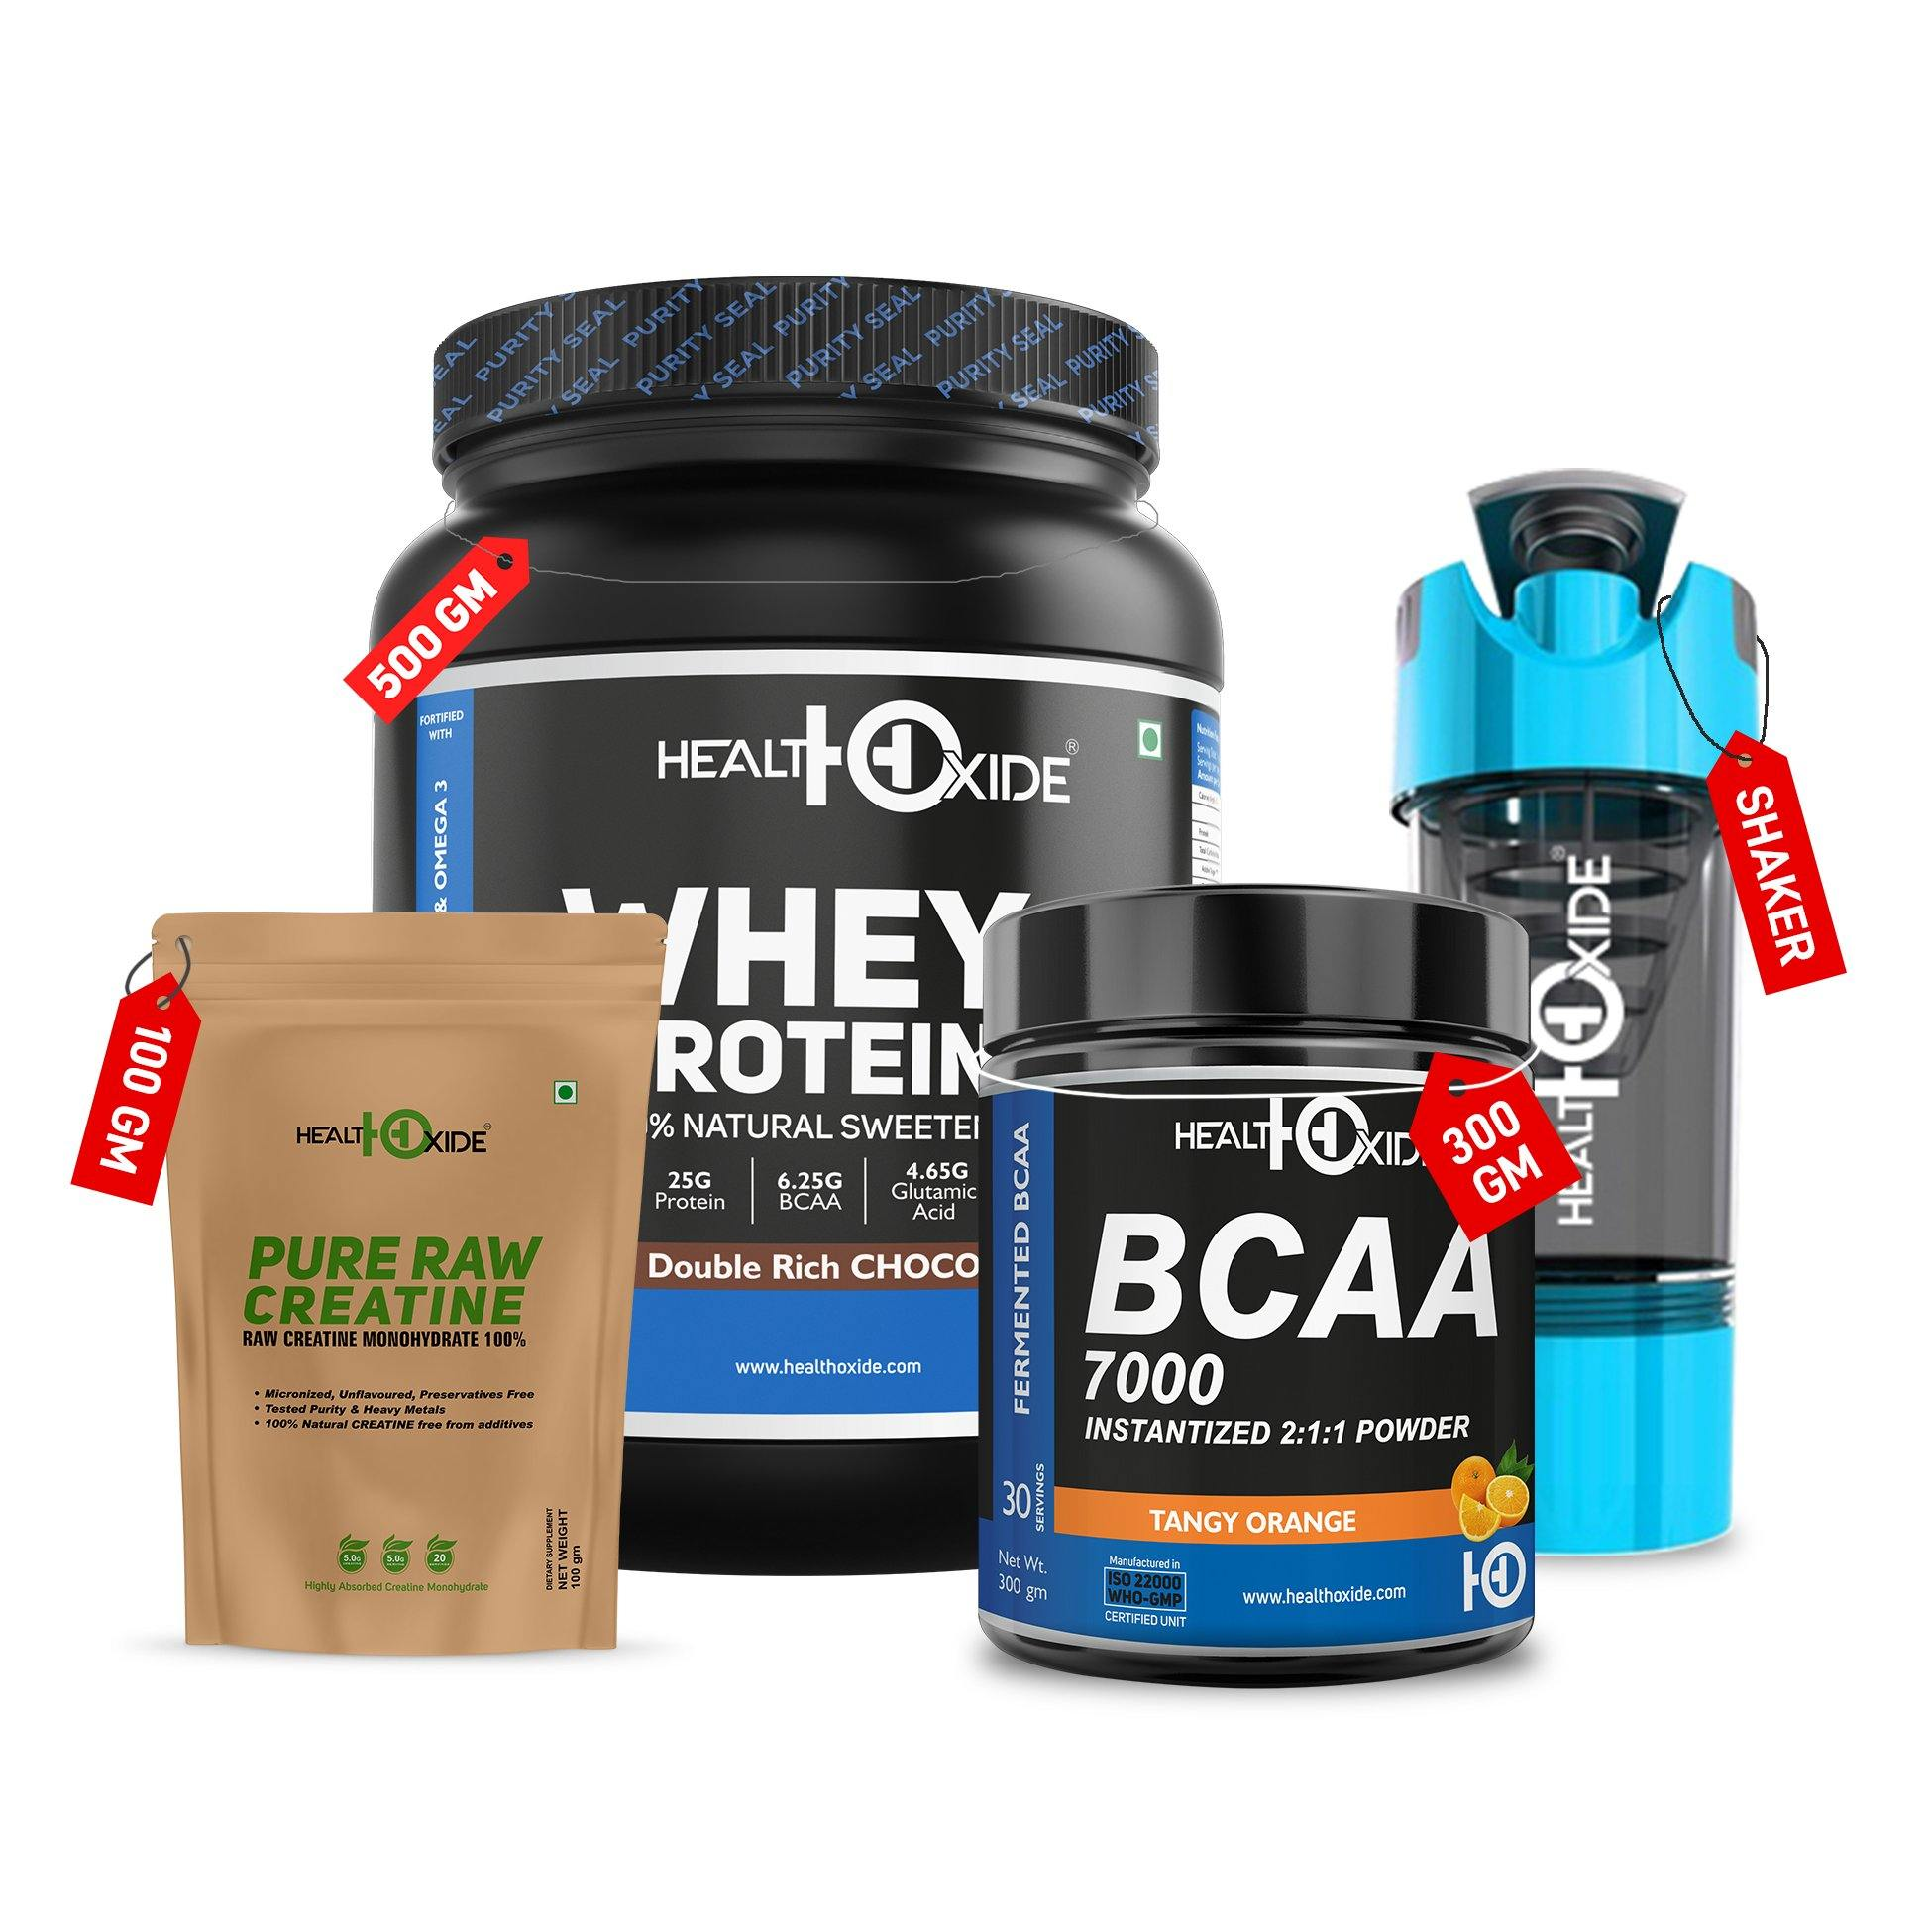 Bodybuilding Combo -Whey Protein + Creatine Unflavored+ BCAA+ Gym Shaker - HealthOxide